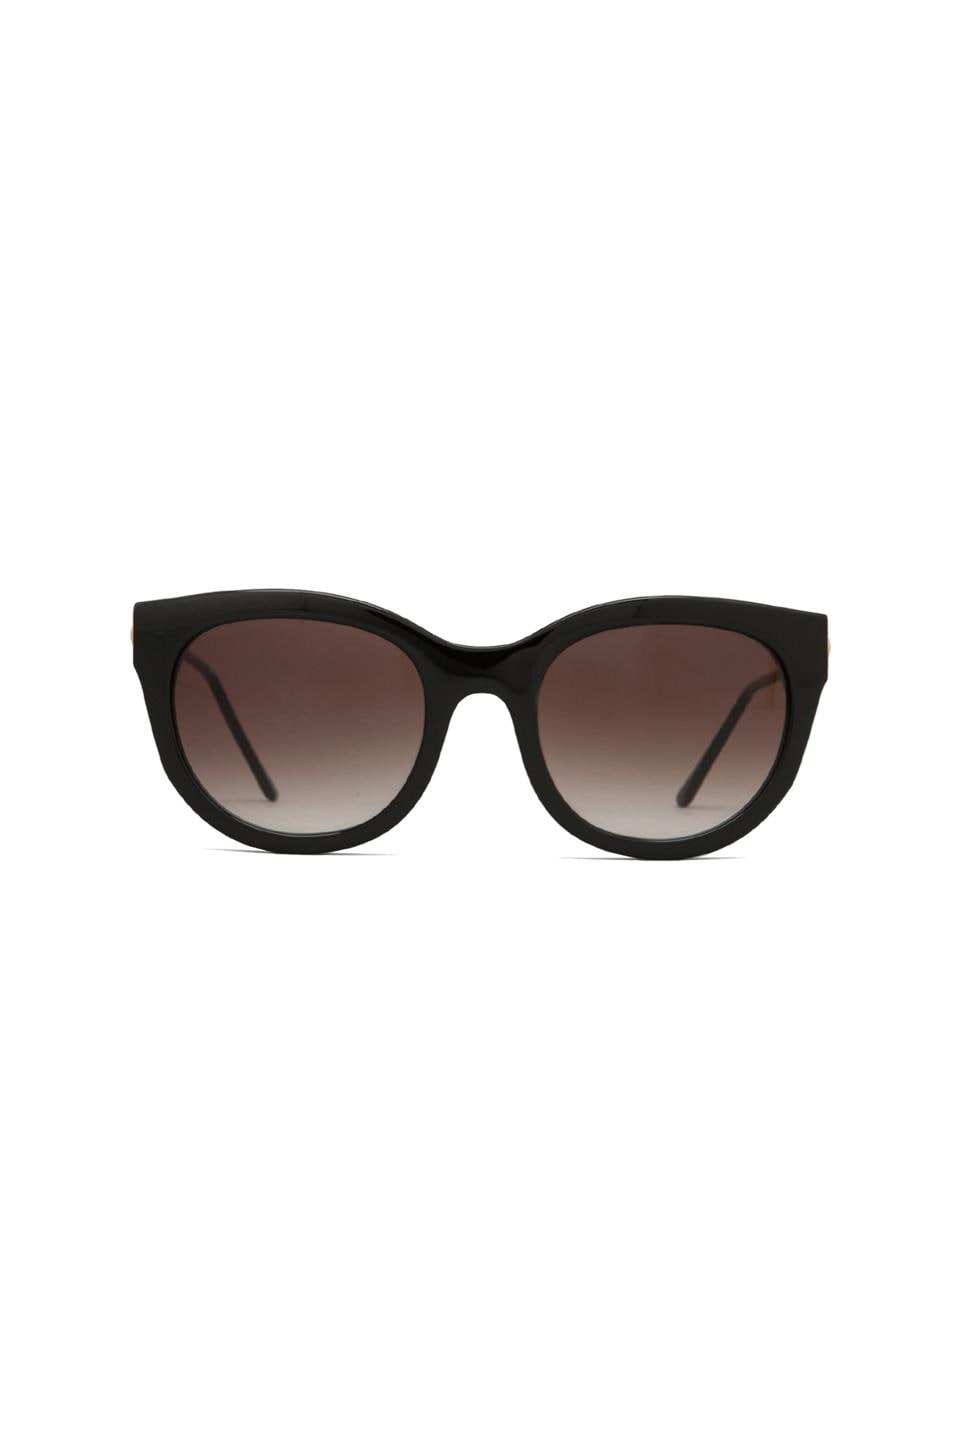 Thierry Lasry Lively Sunglasses in Lively